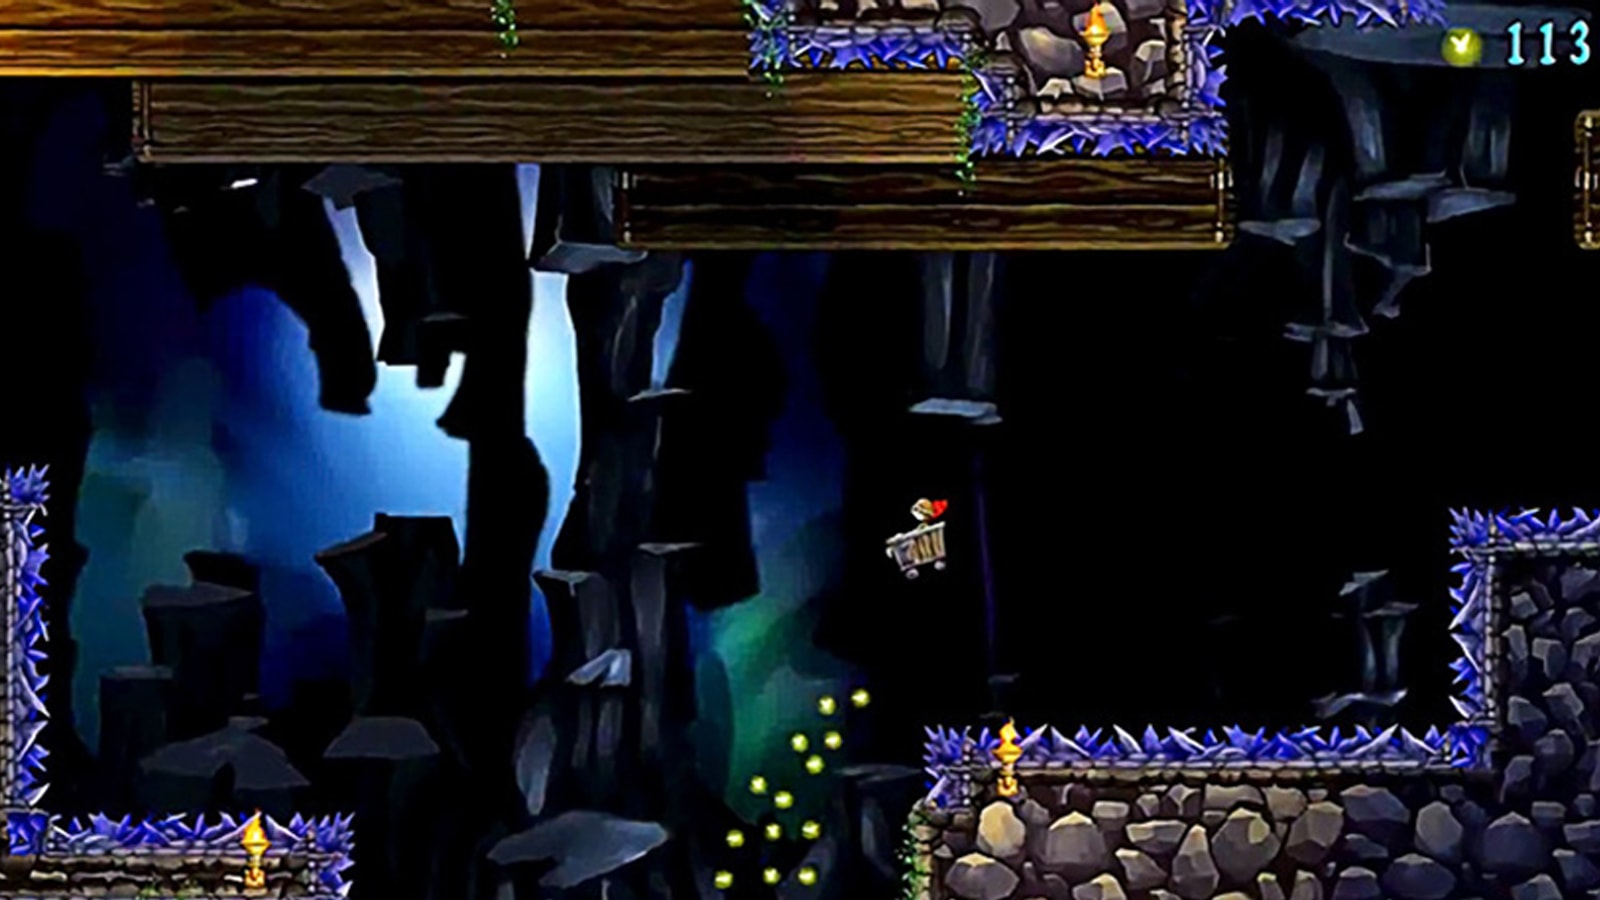 A caped boy riding a mine cart soars through the air in a large underground cavern.